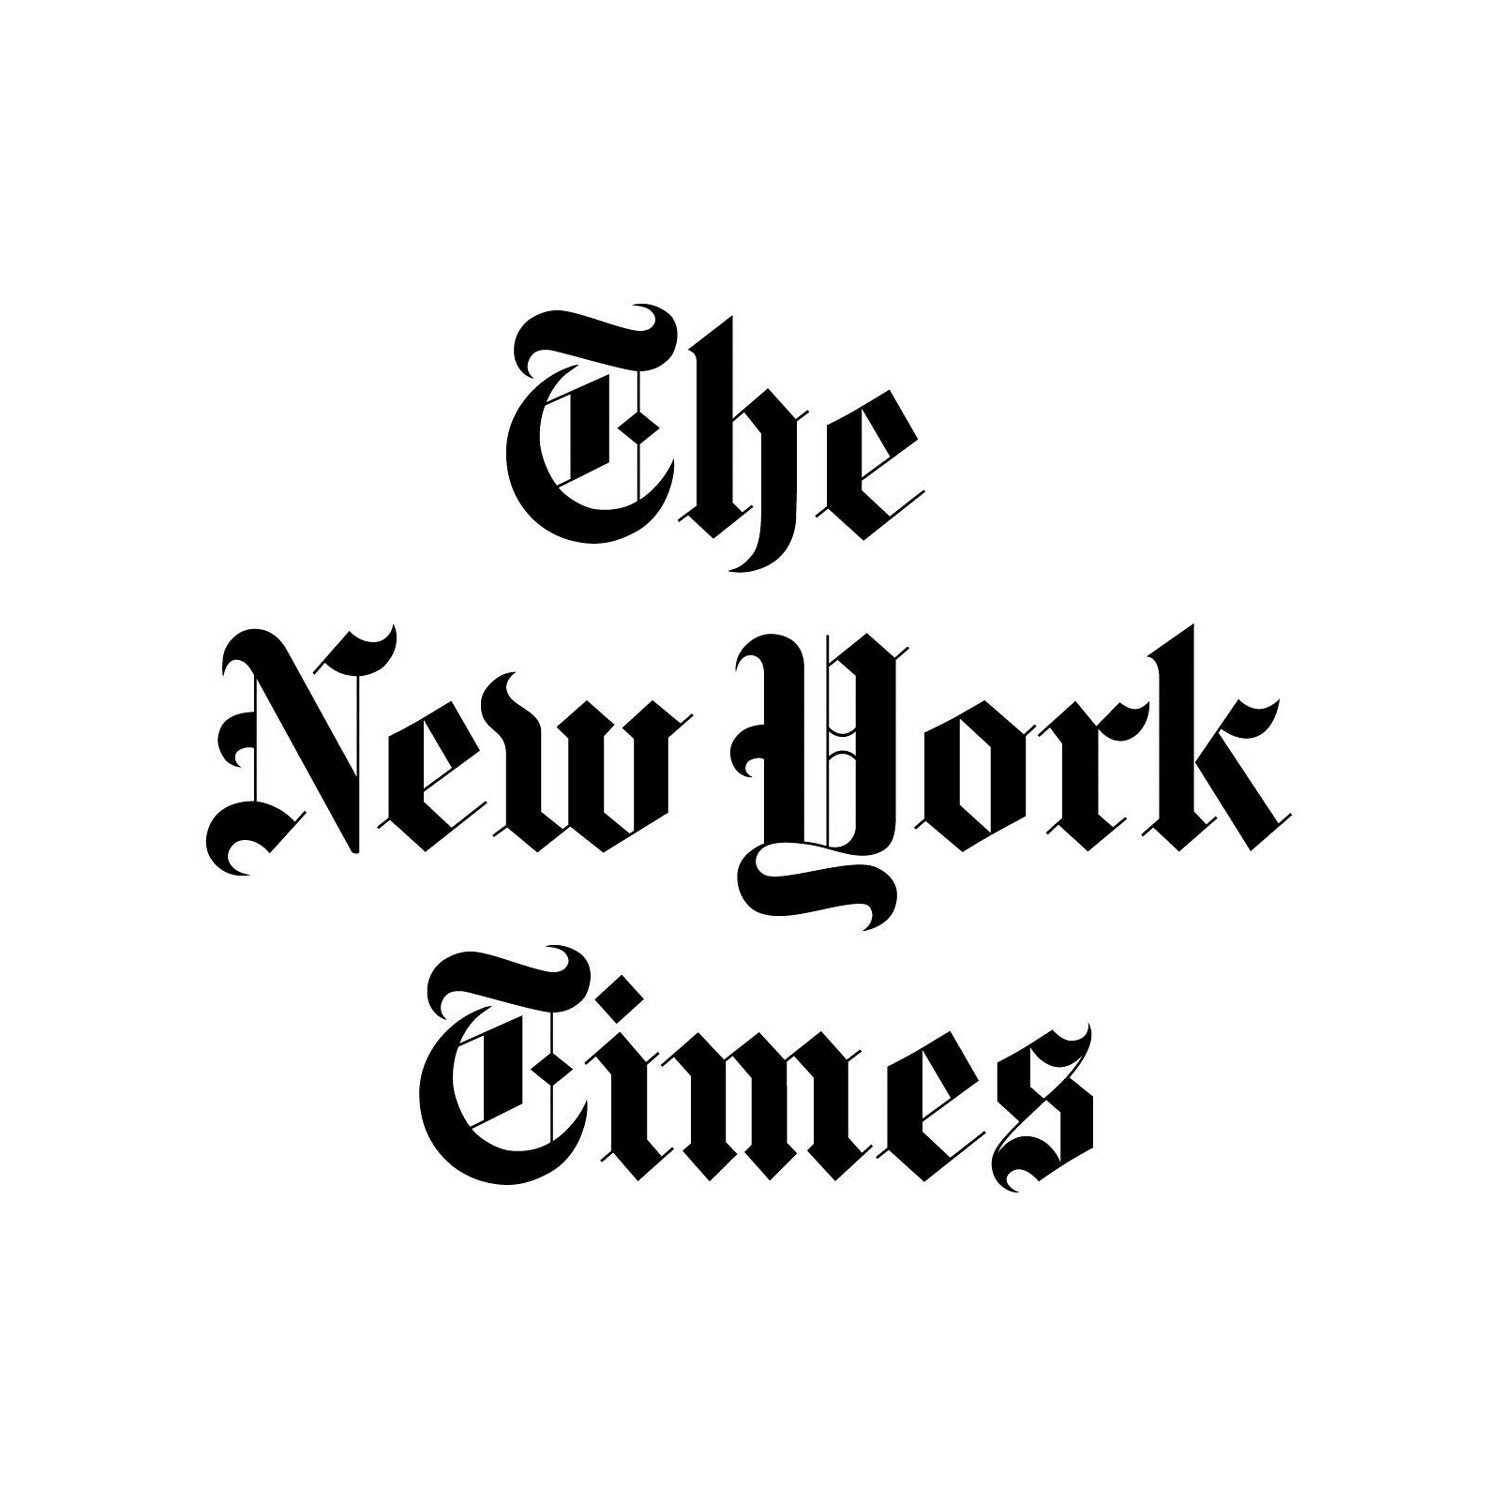 new-york-times-logopng-new-york-times-logo-png-1500_1500.png